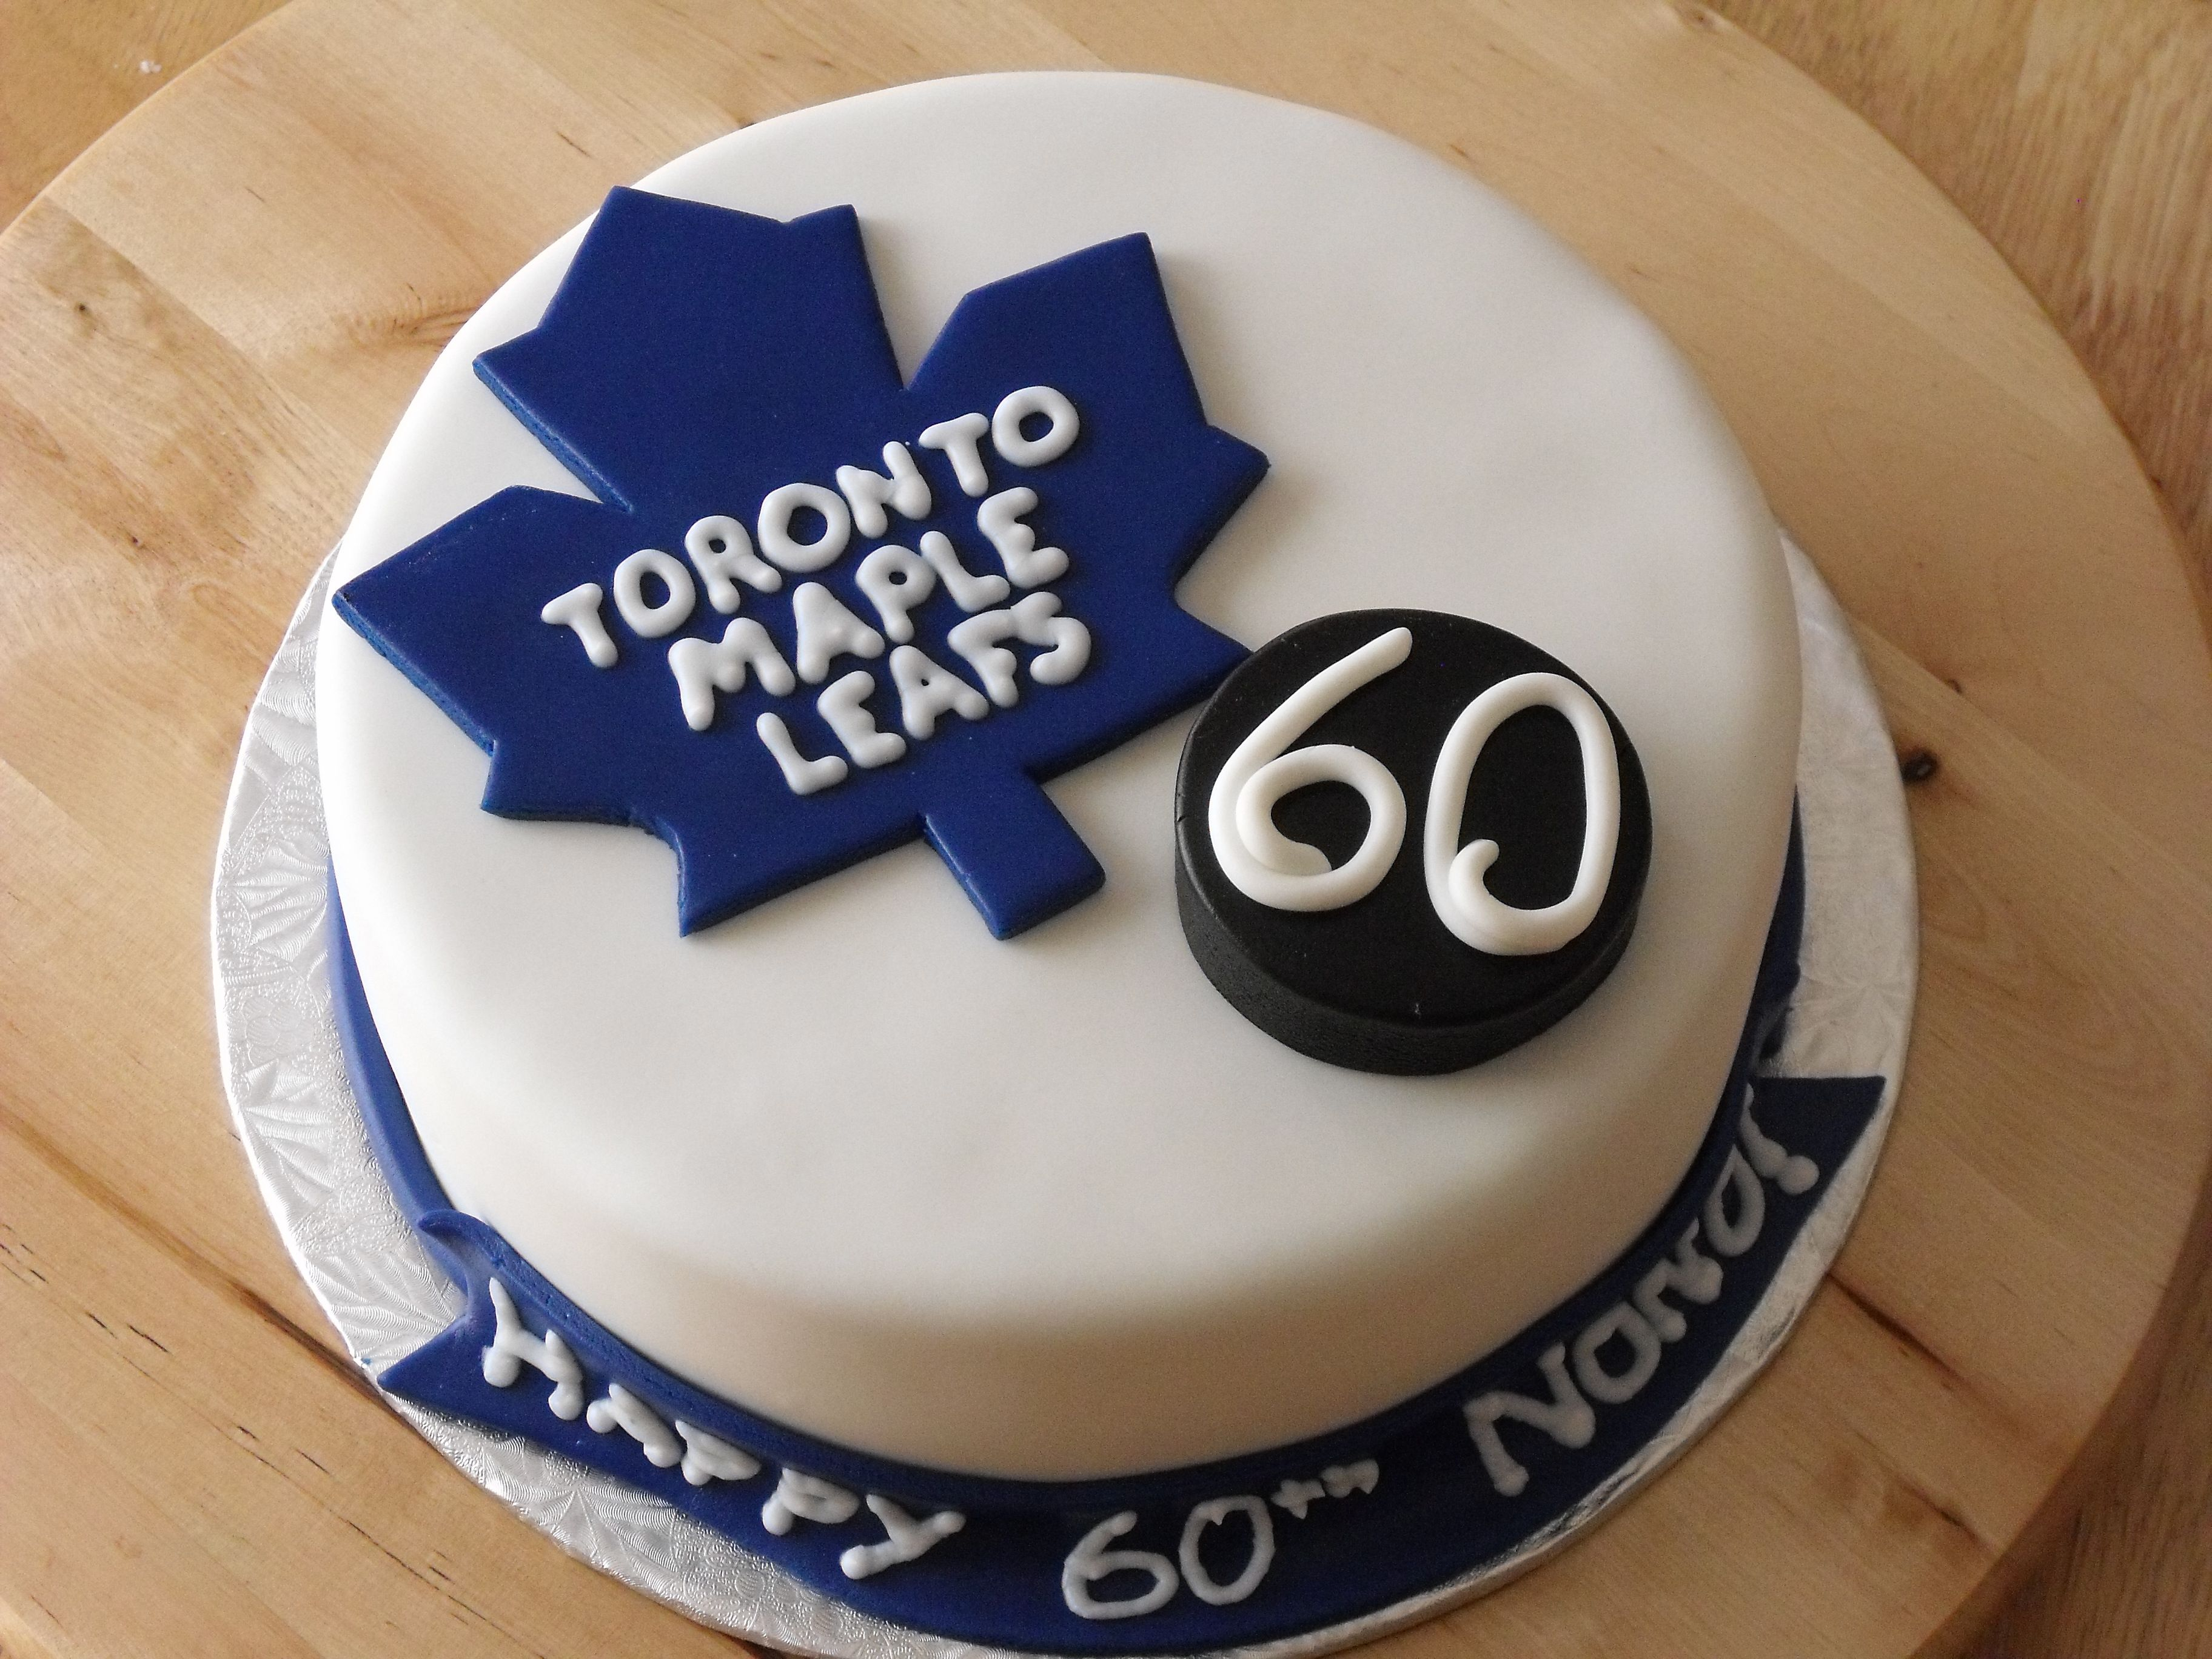 """Toronto Maple Leafs 60th - Customer requested a leafs theme cake for a big fan turning 60... this is what I came up with. Was planning a hockey puck cake but my black mmf would NOT work to cover a cake. I was happy with this result just the same. 8"""" vanilla butter cake w/ strawberry buttercream filling. All mmf, w/ roayl icing writing."""